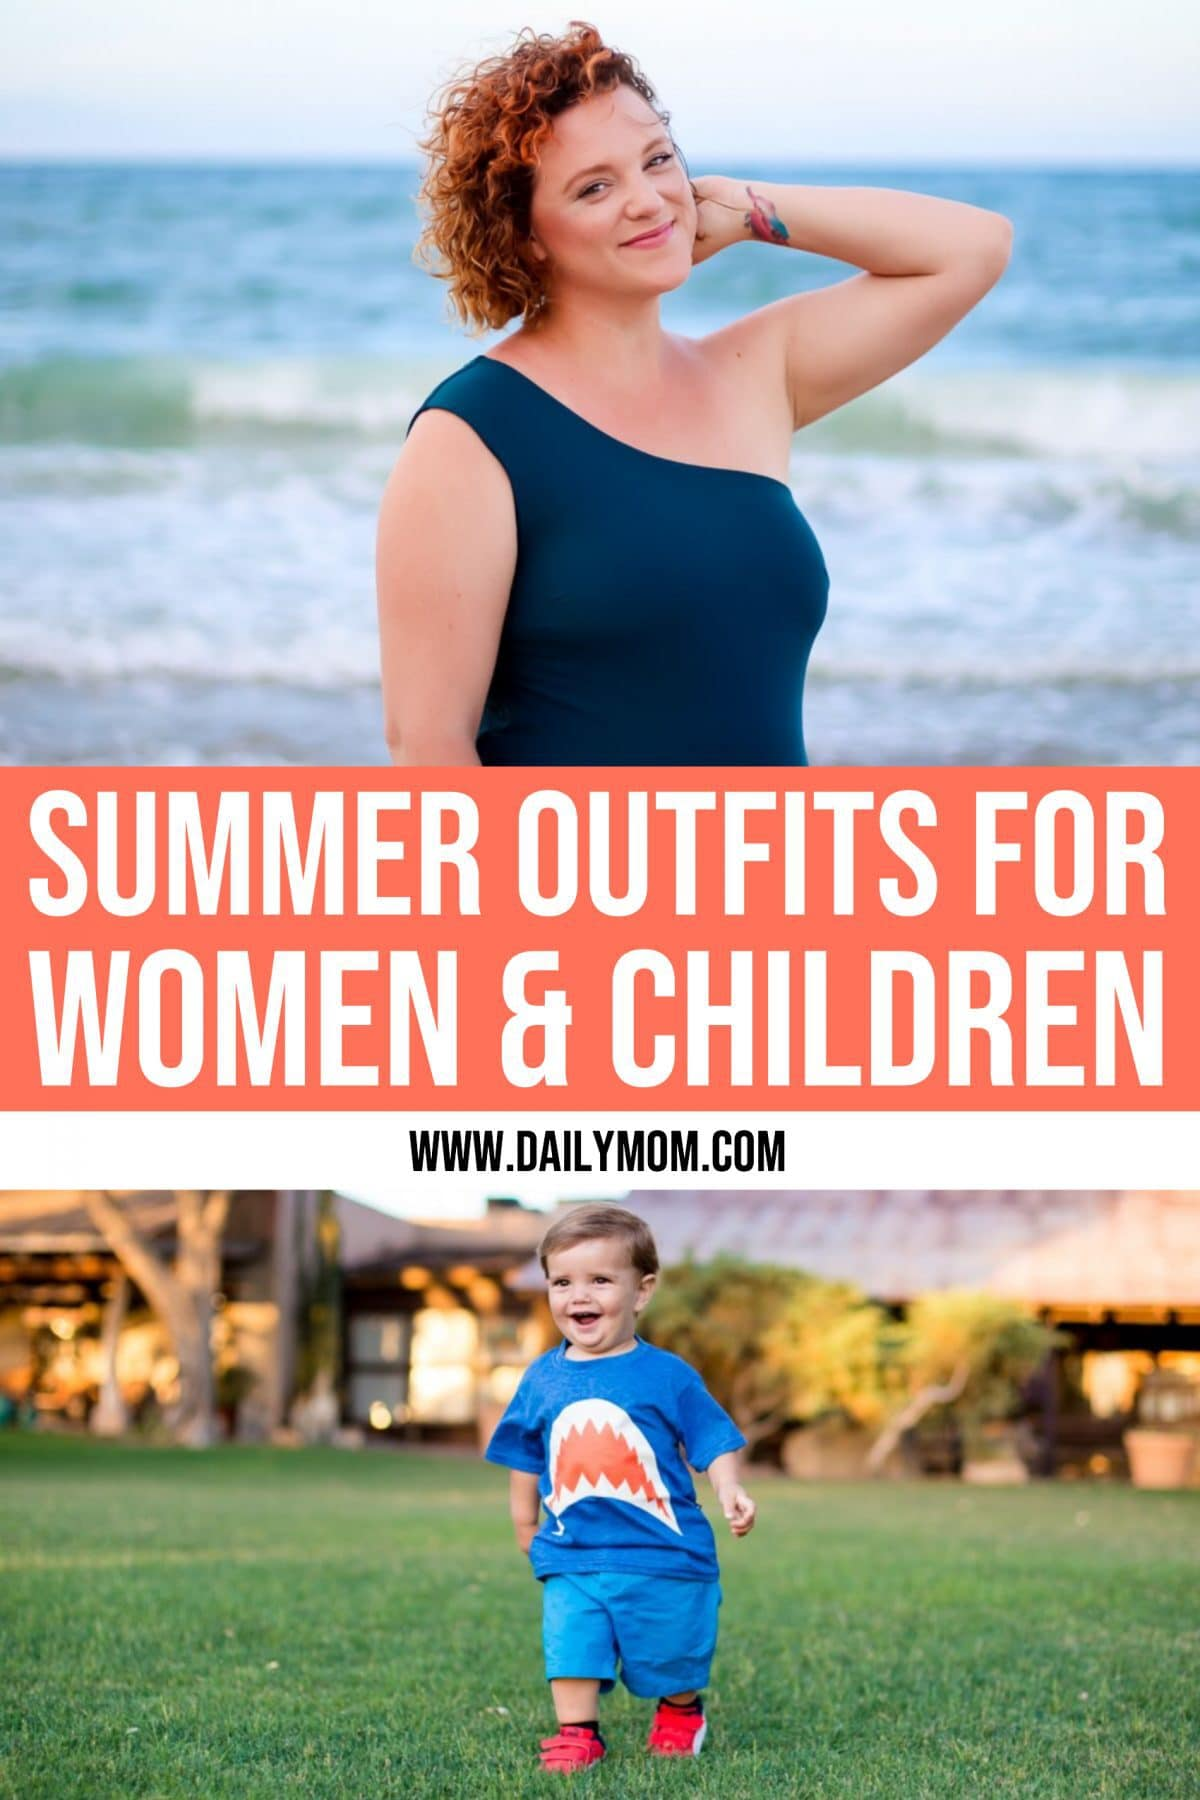 Summer Outfits For Women & Children